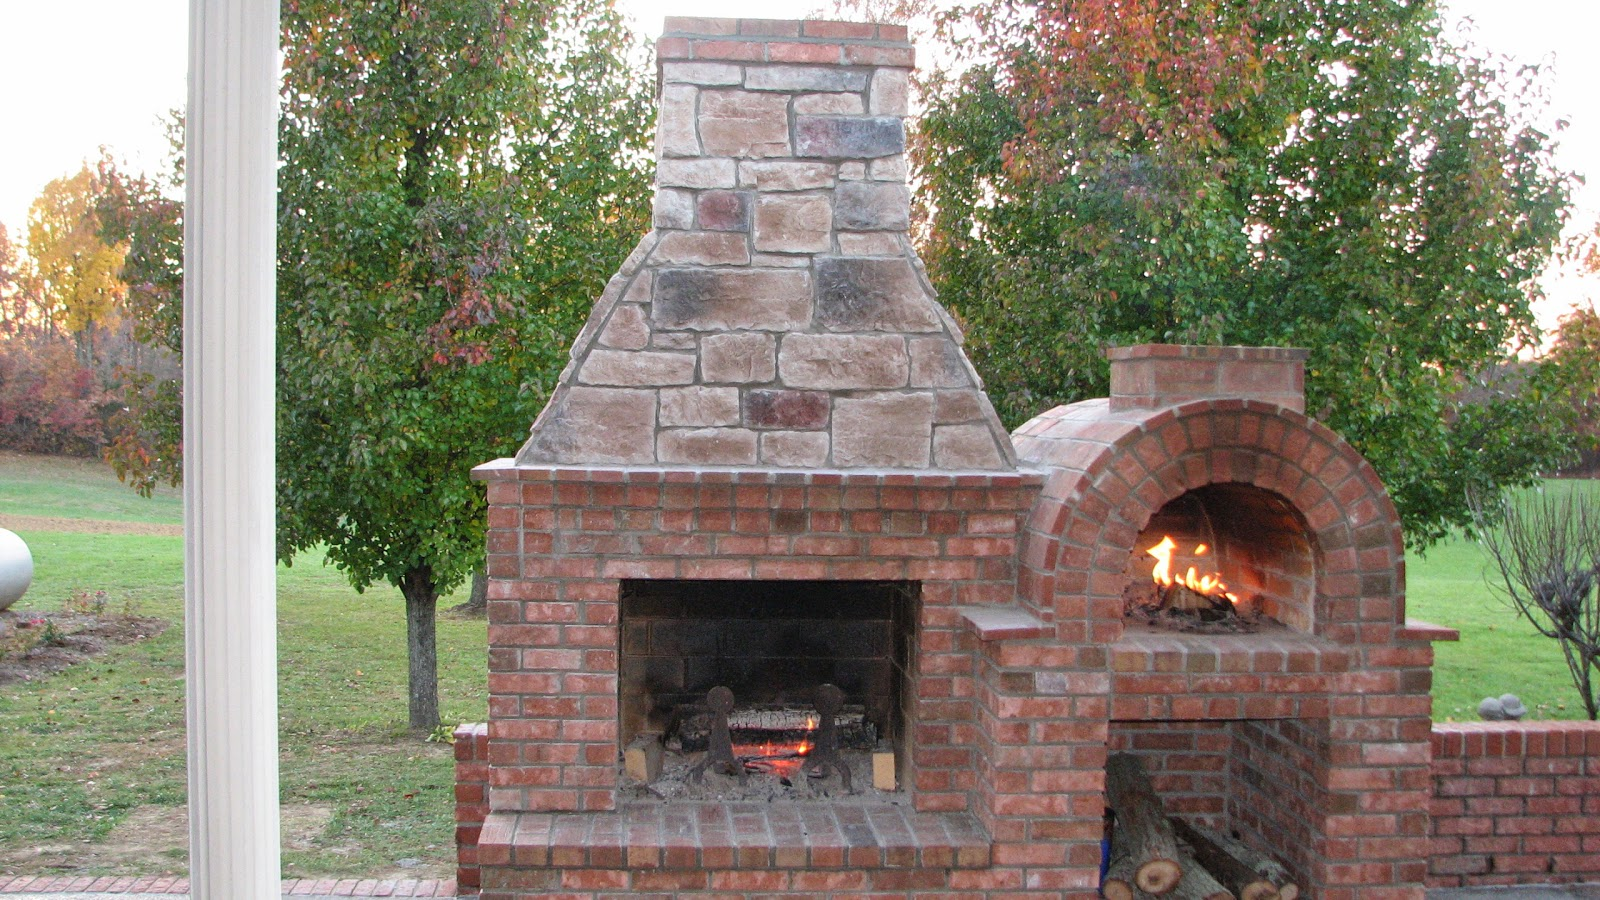 Wood Burning Brick Oven Plans Build Pizza Ovens Tutorial 2015 | Home ...